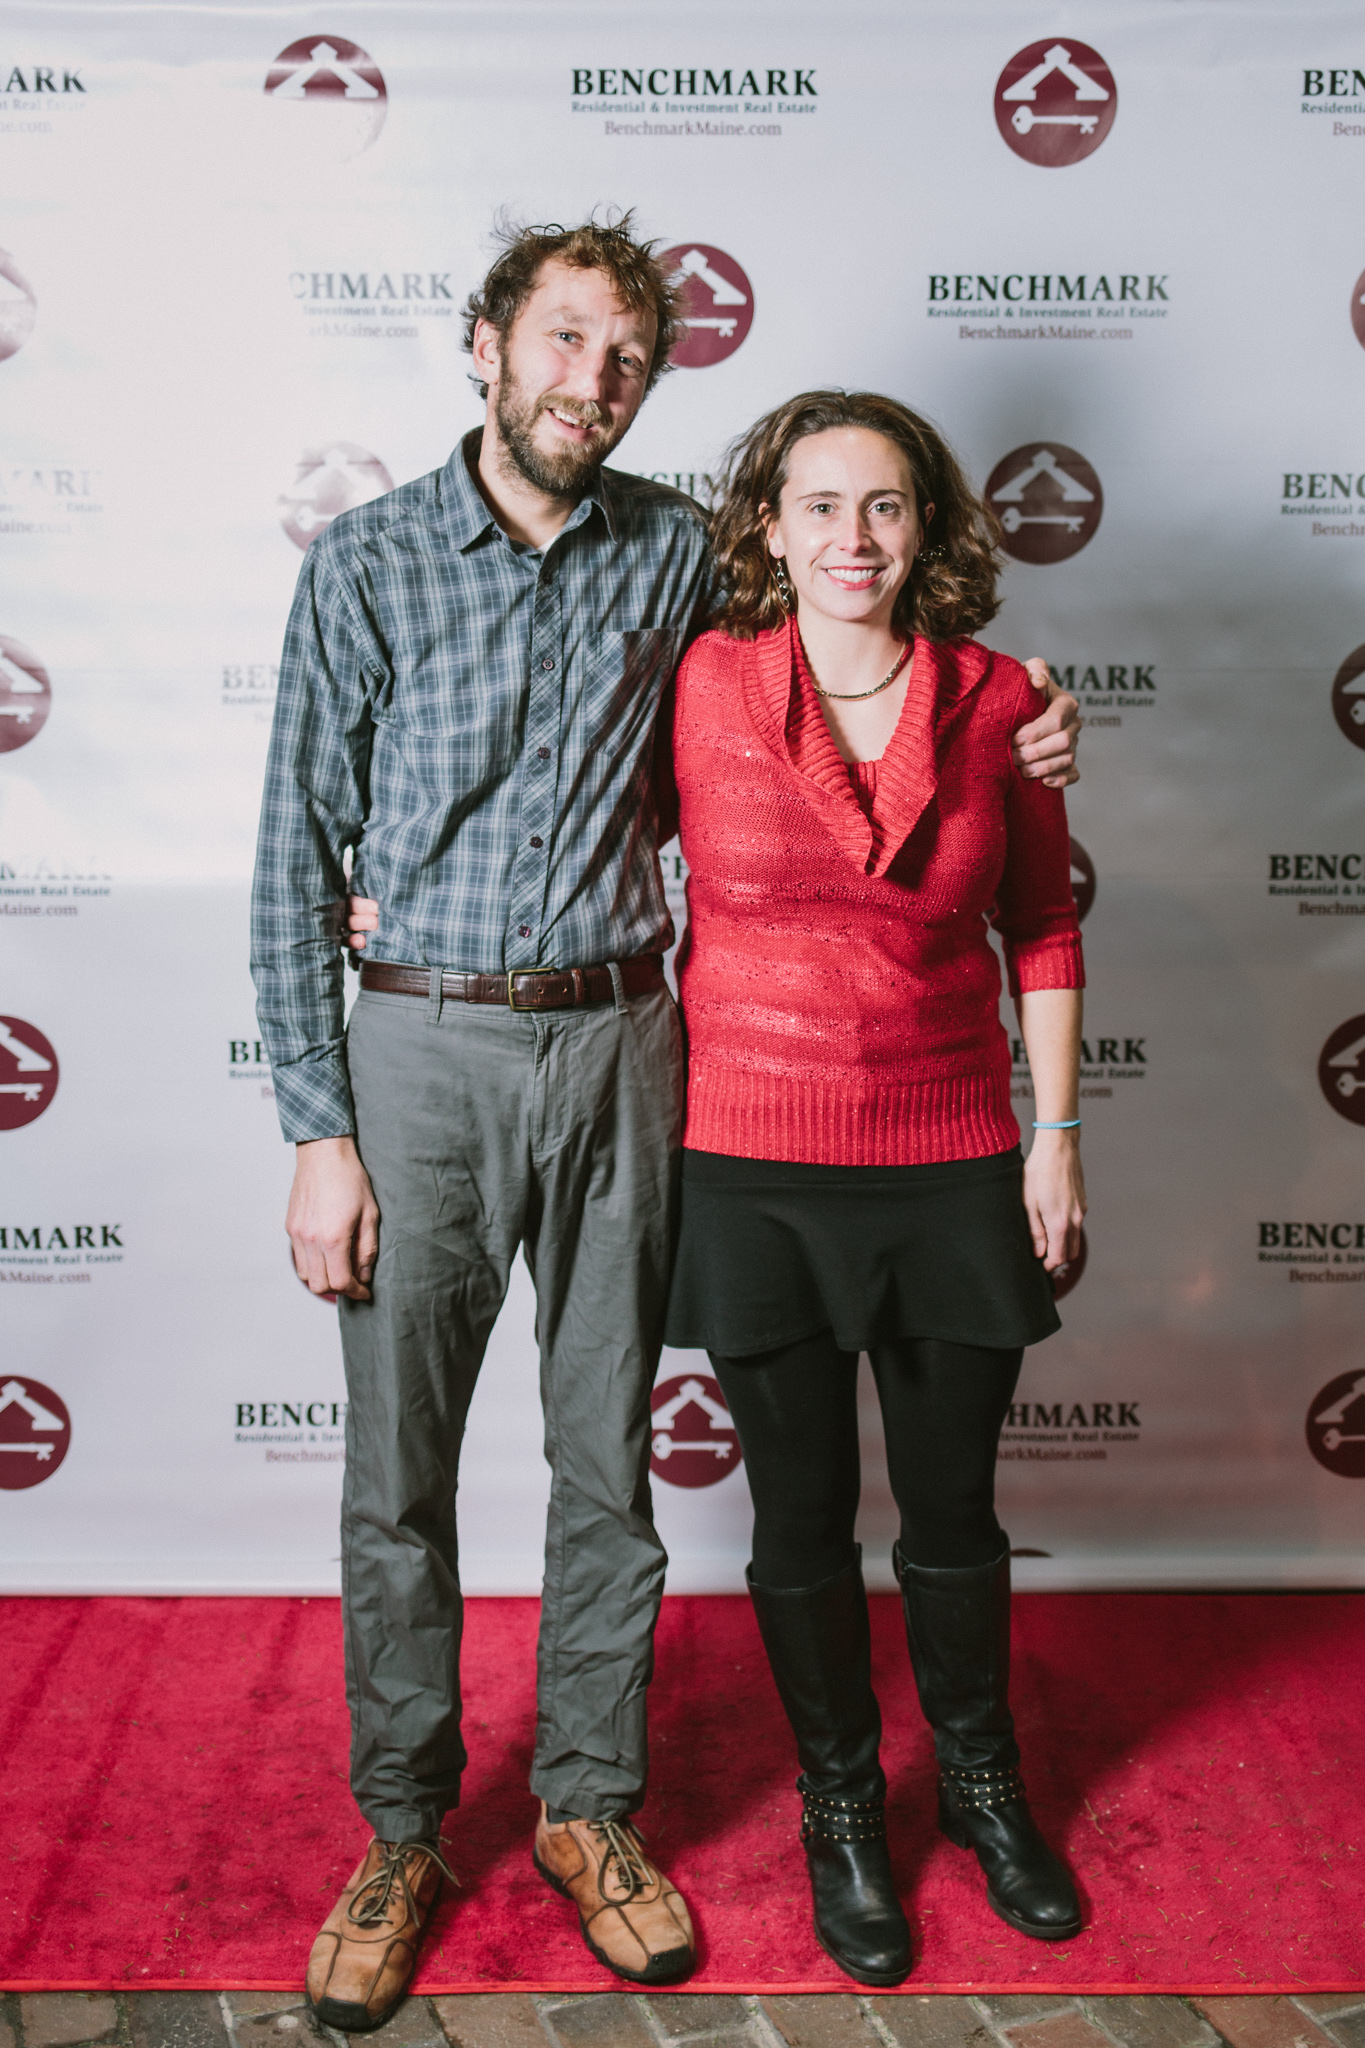 Benchmark_Holiday_Party_SR-051.jpg